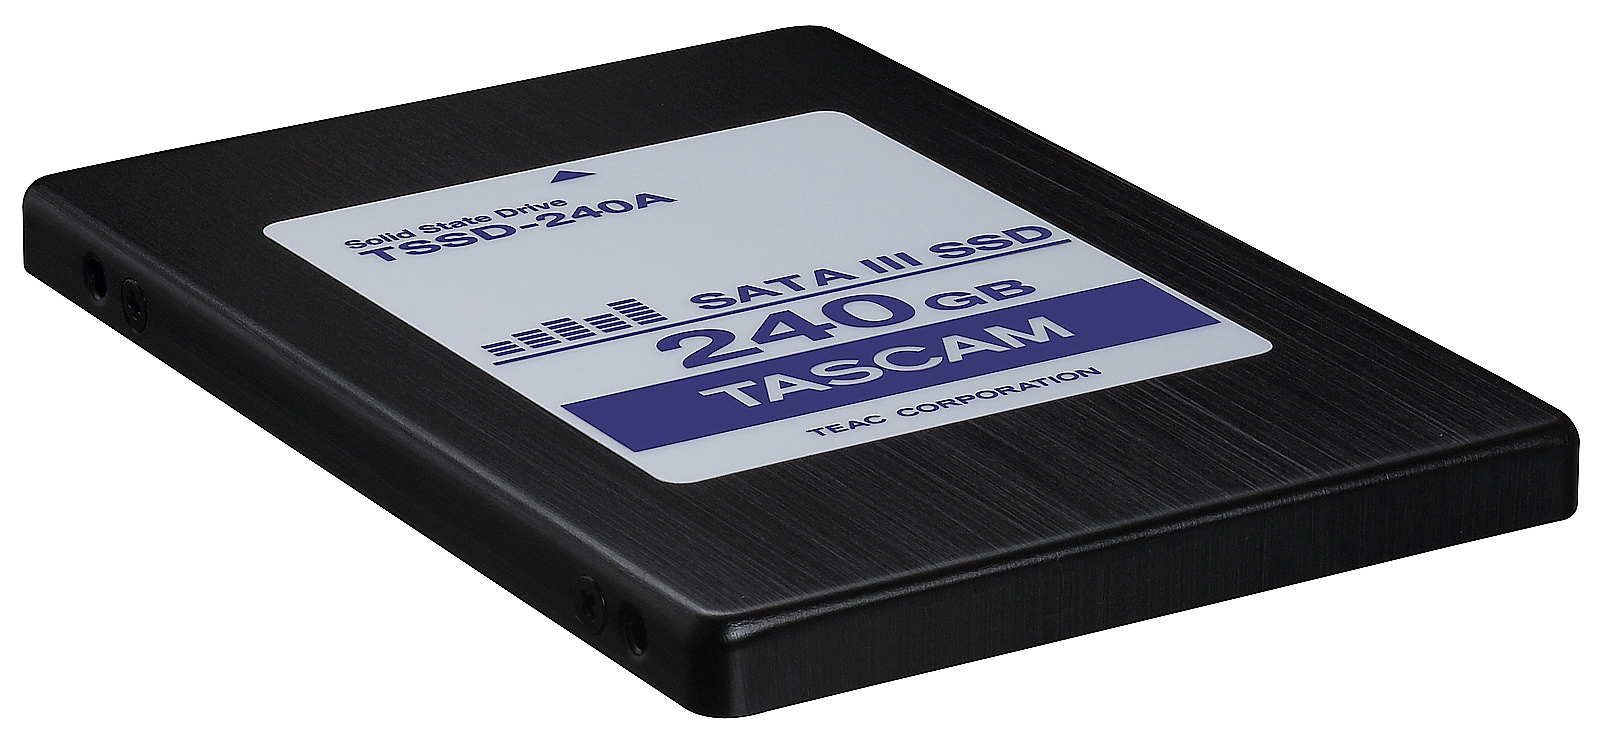 Tascam 240-GB Serial ATA SSD